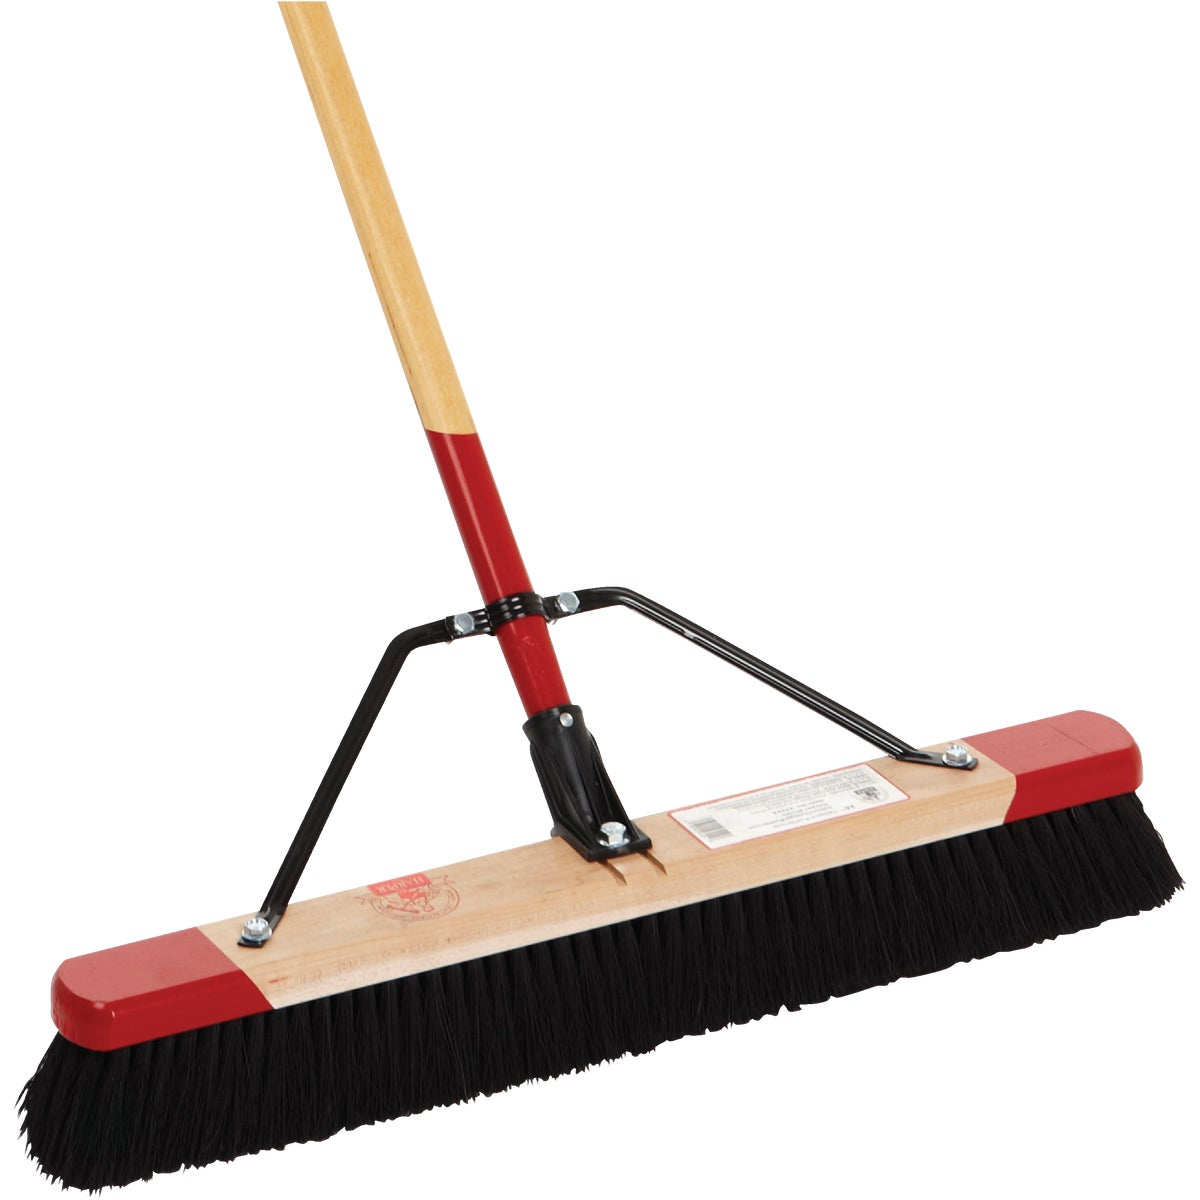 "24"" TAMPICO FN SWP BROOM - 3224A by Harper Brush Incom"